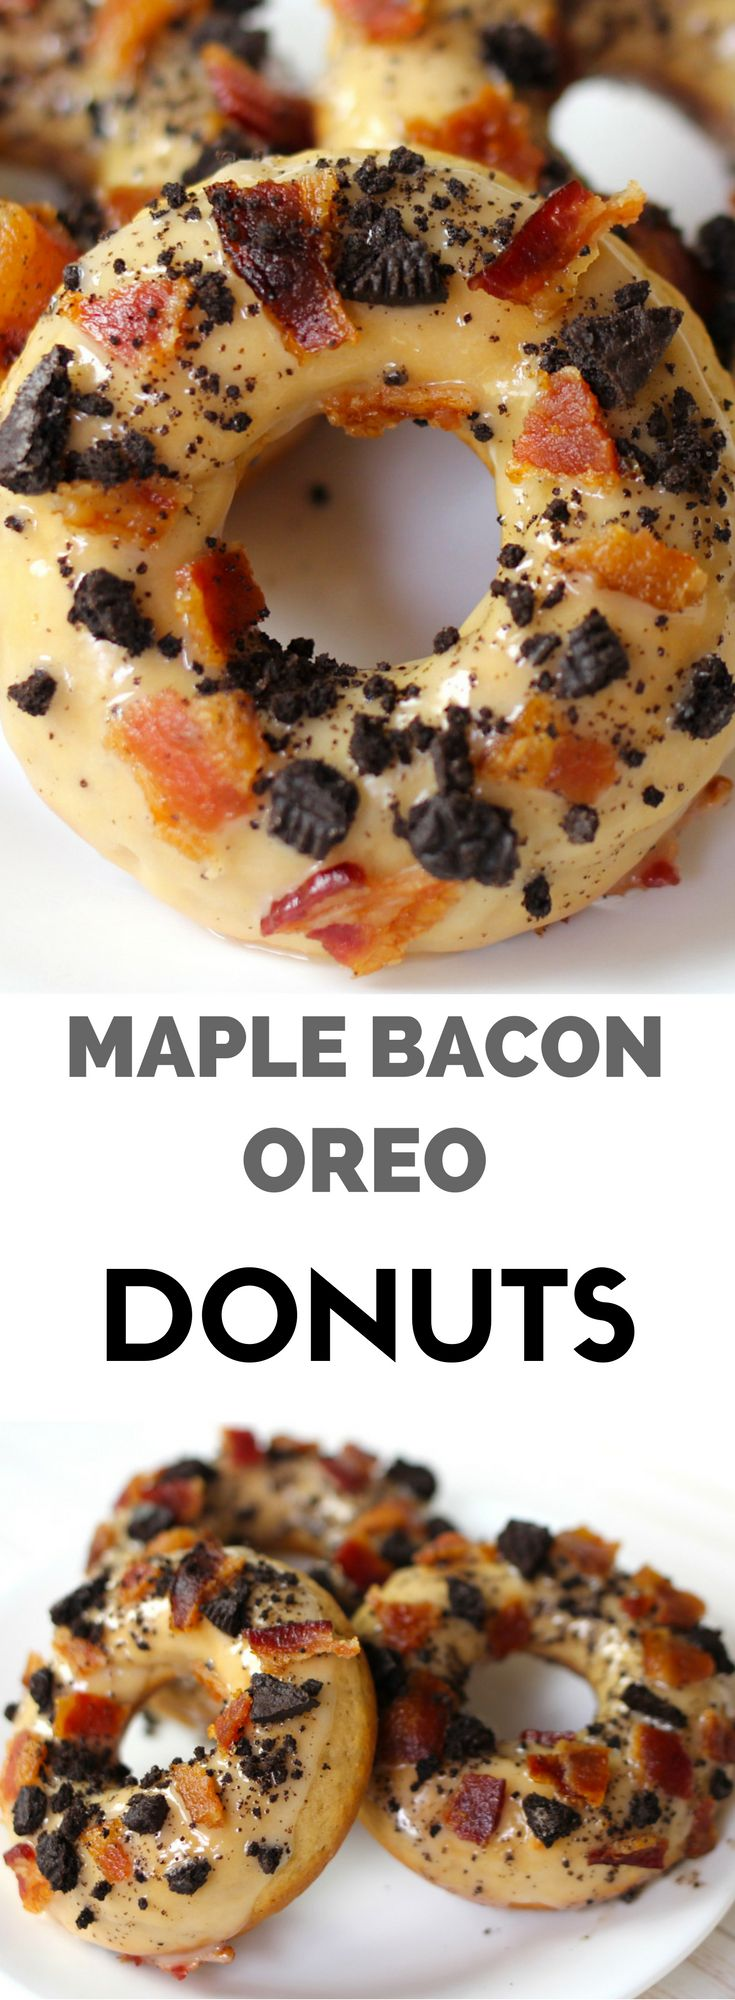 Maple Bacon Oreo Donuts recipe starts with a homemade baked donut topped with a unique combination of sweet and salty flavors.